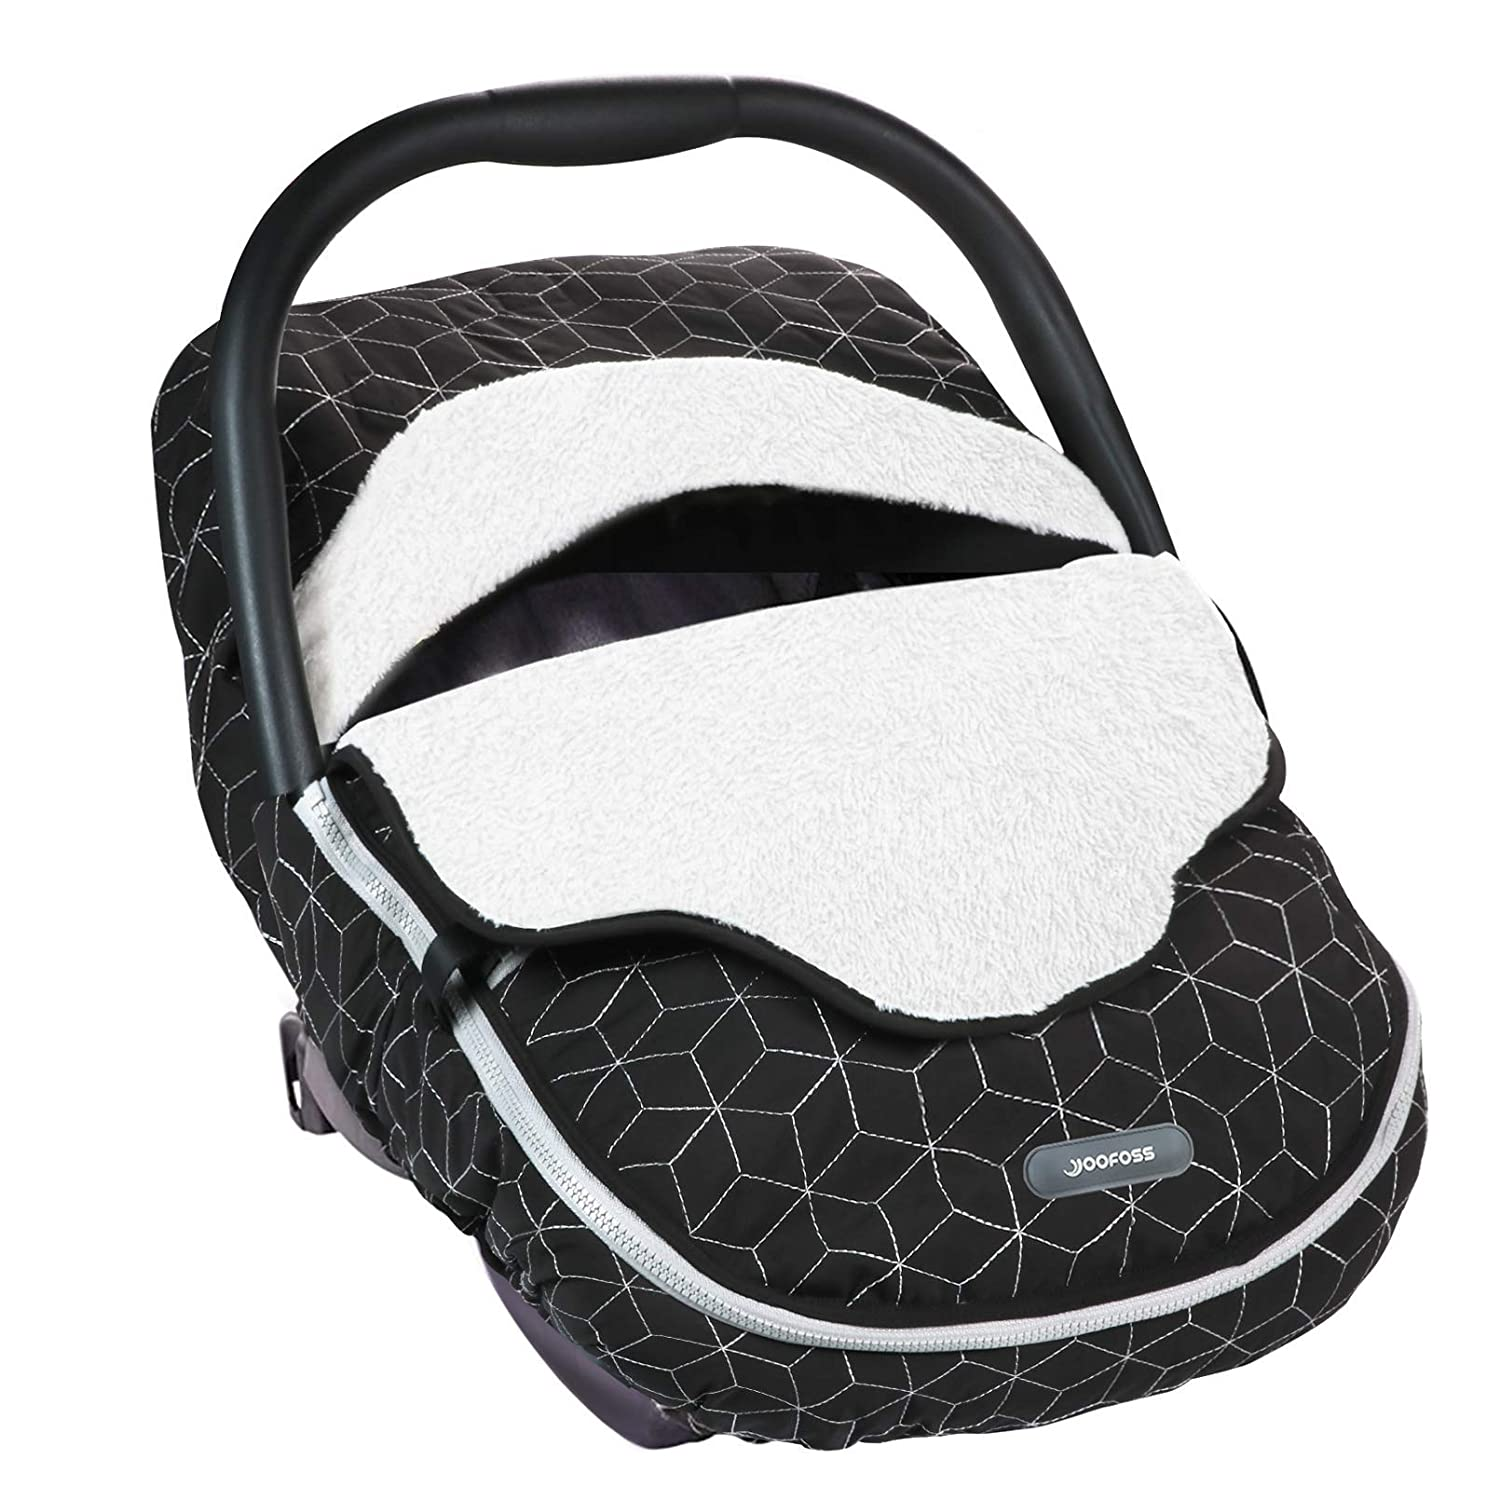 Max 86% OFF Yoofoss Baby Car Seat Cover Carseat to Super sale period limited Pro Canopies Winter